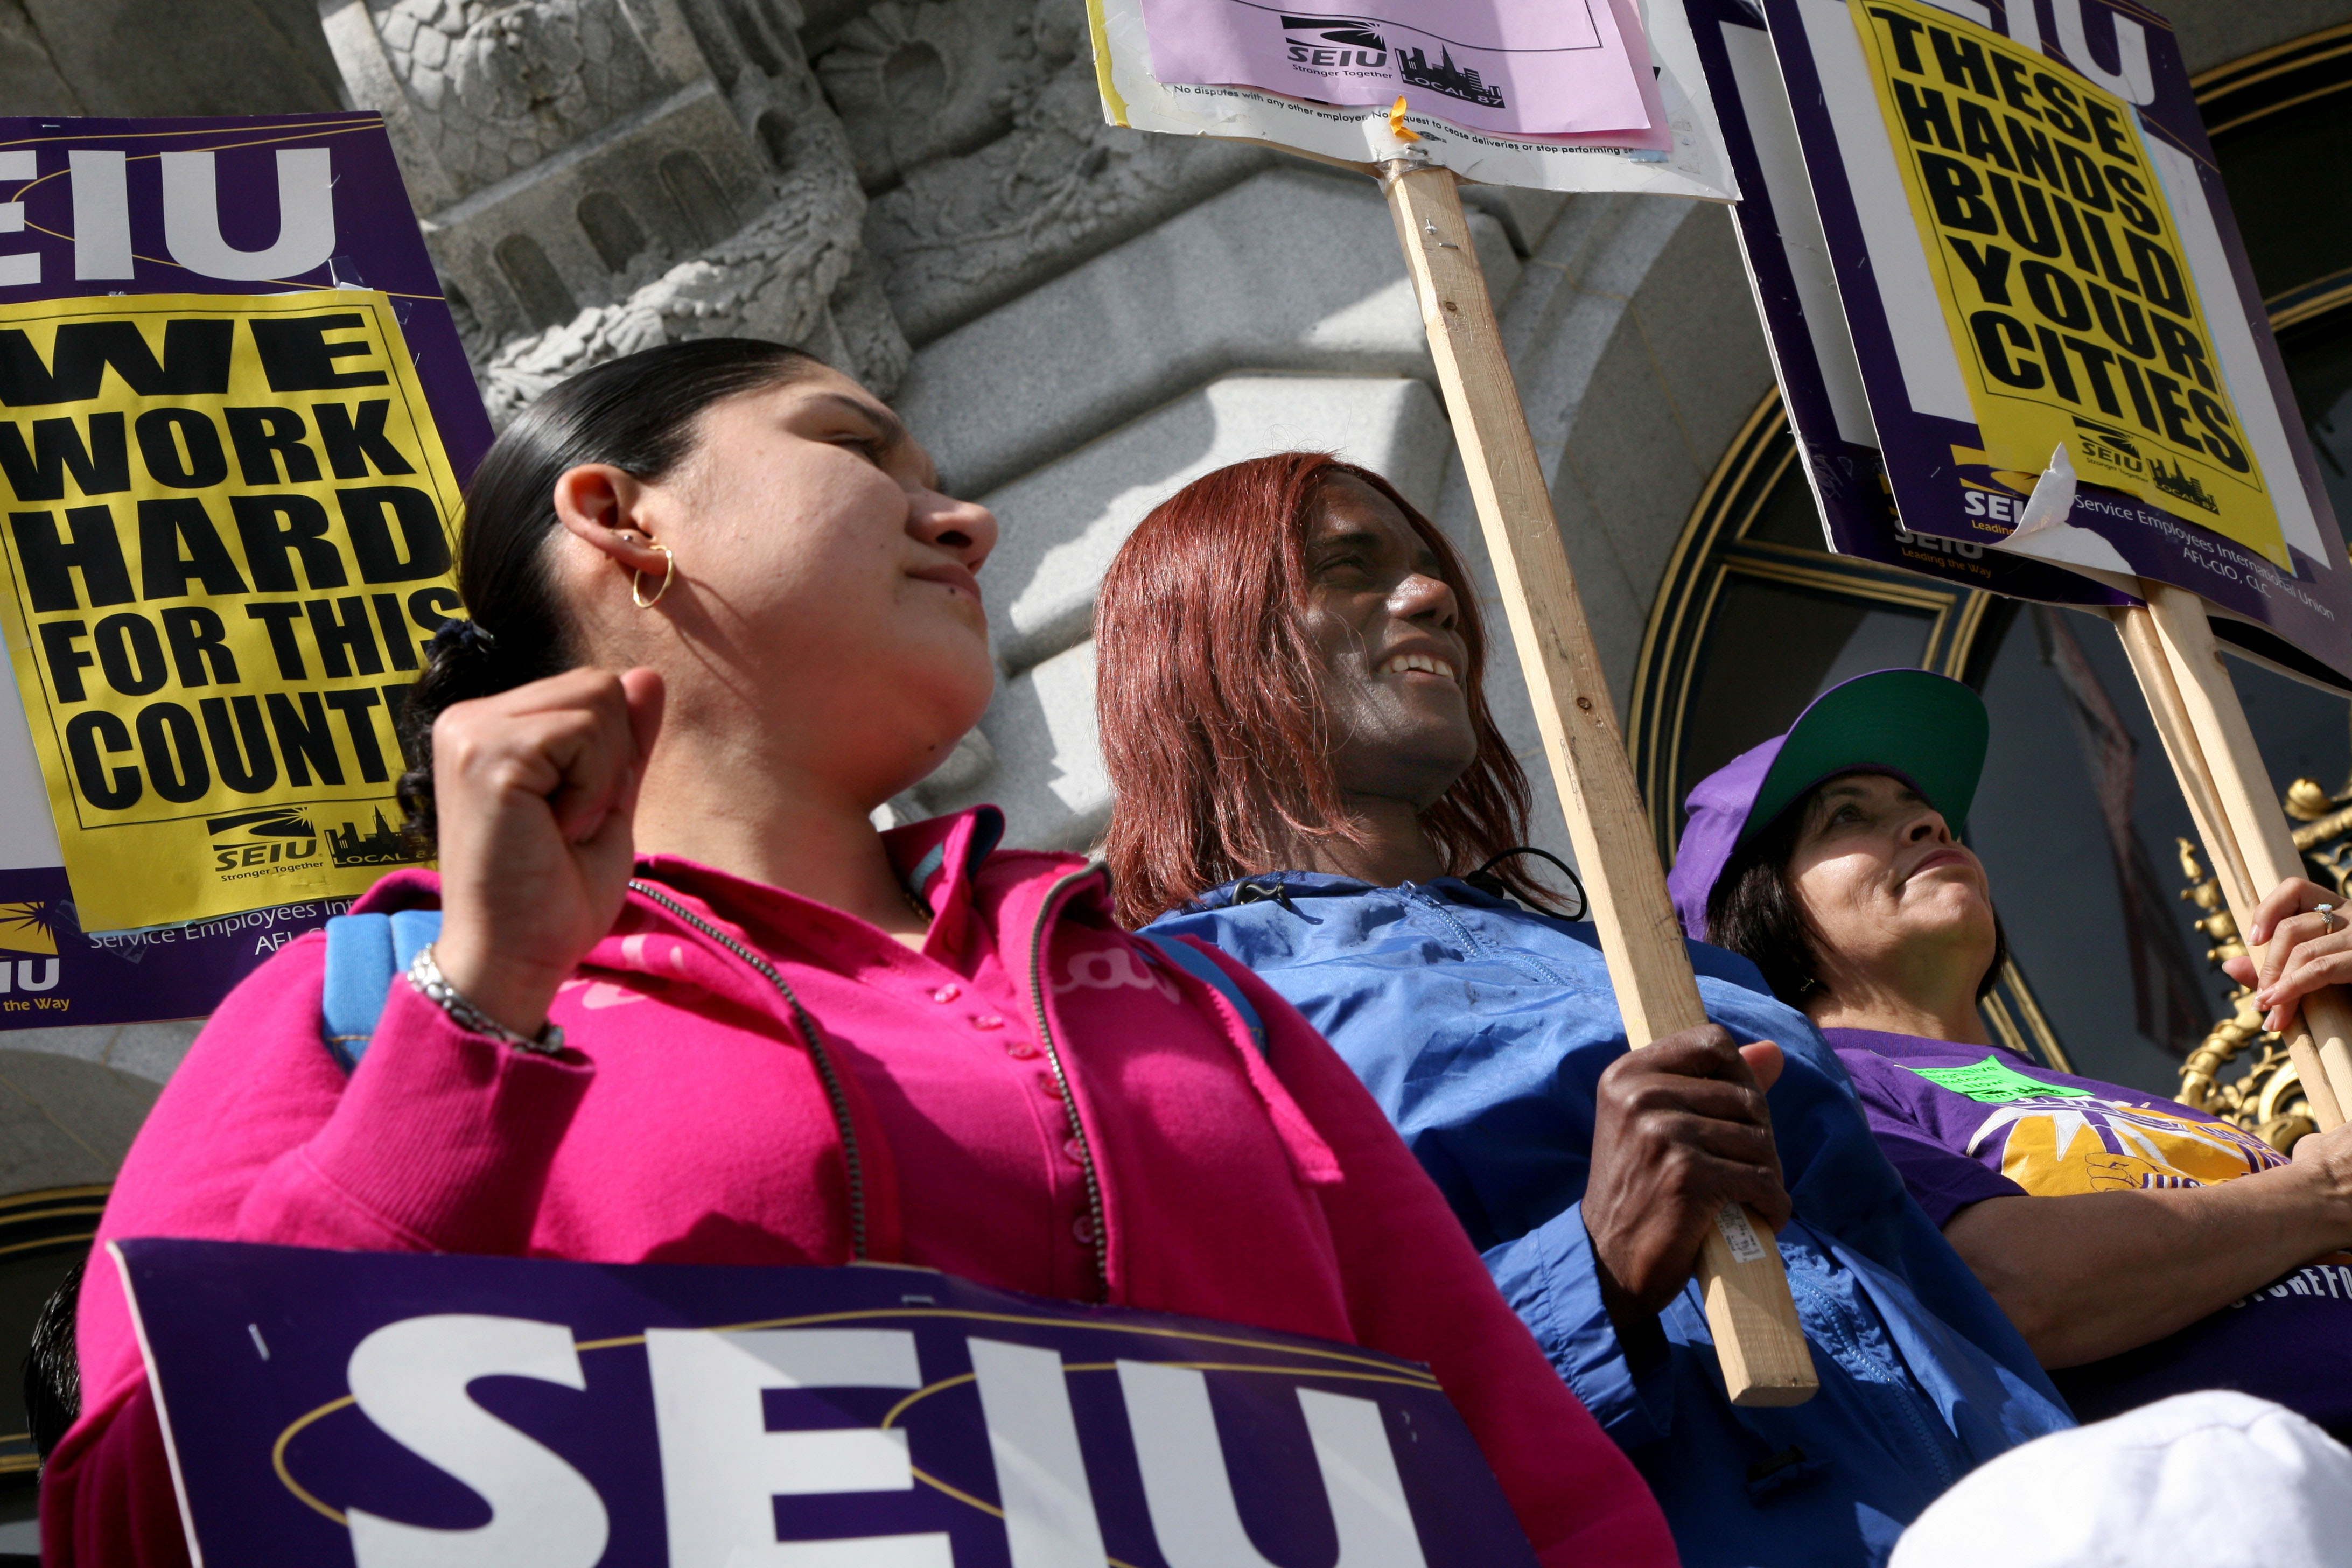 May Day protesters take streets for workers rights